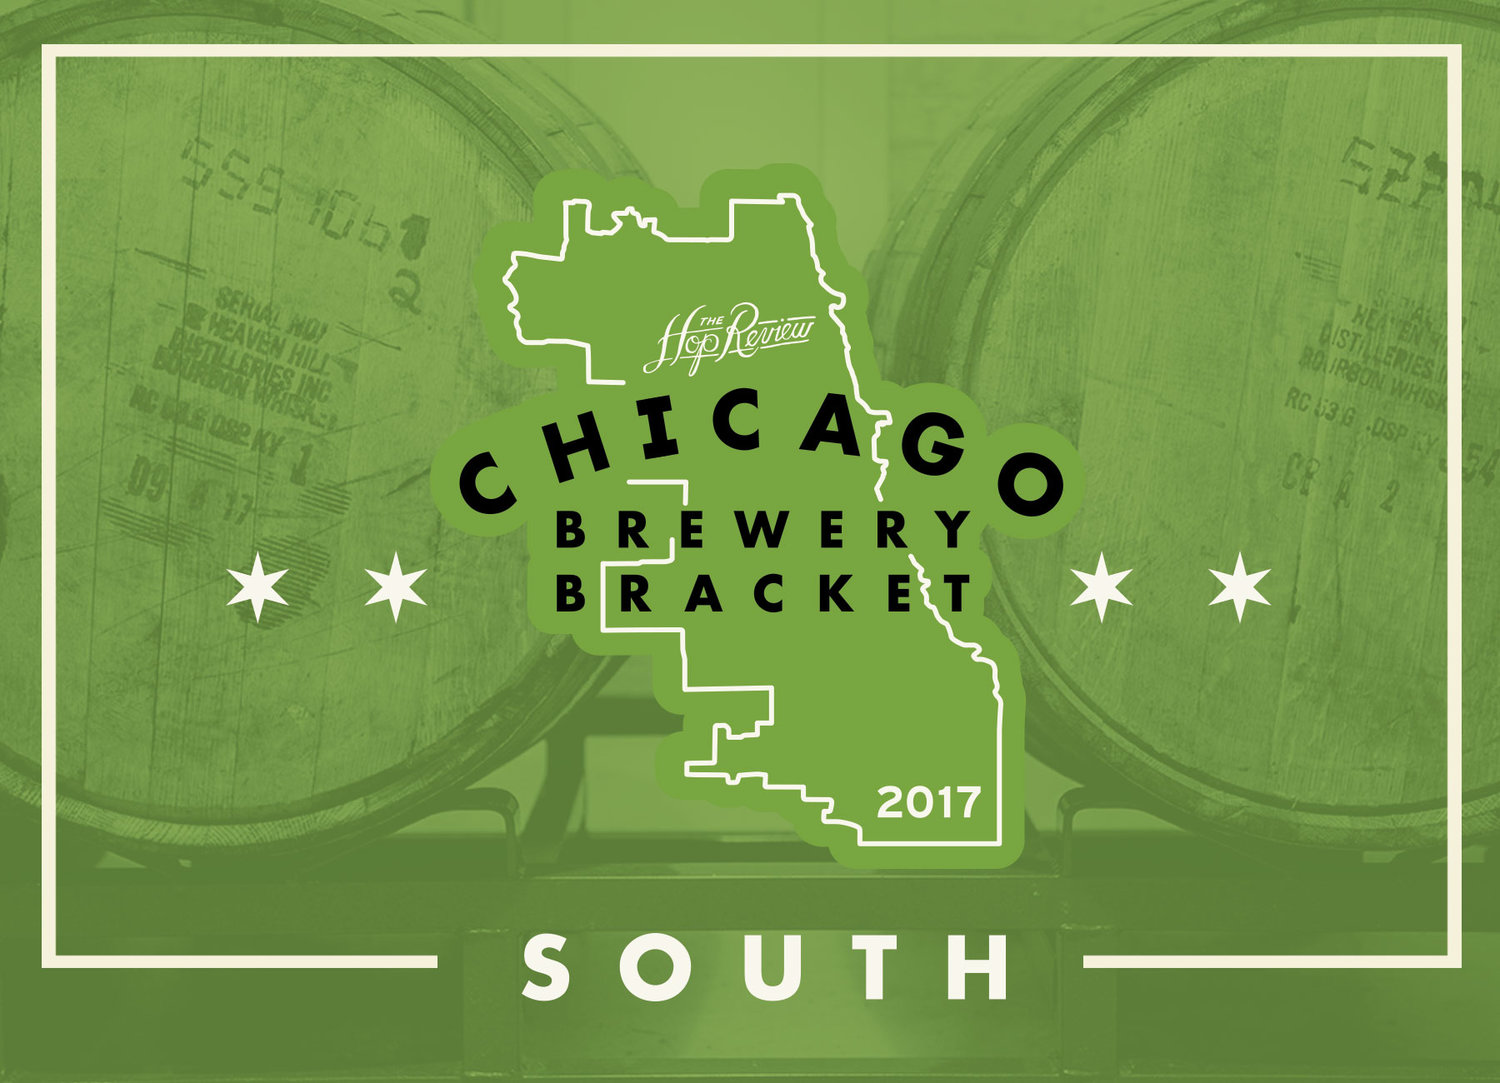 The Chicago Brewery Bracket: South – Rd. 2